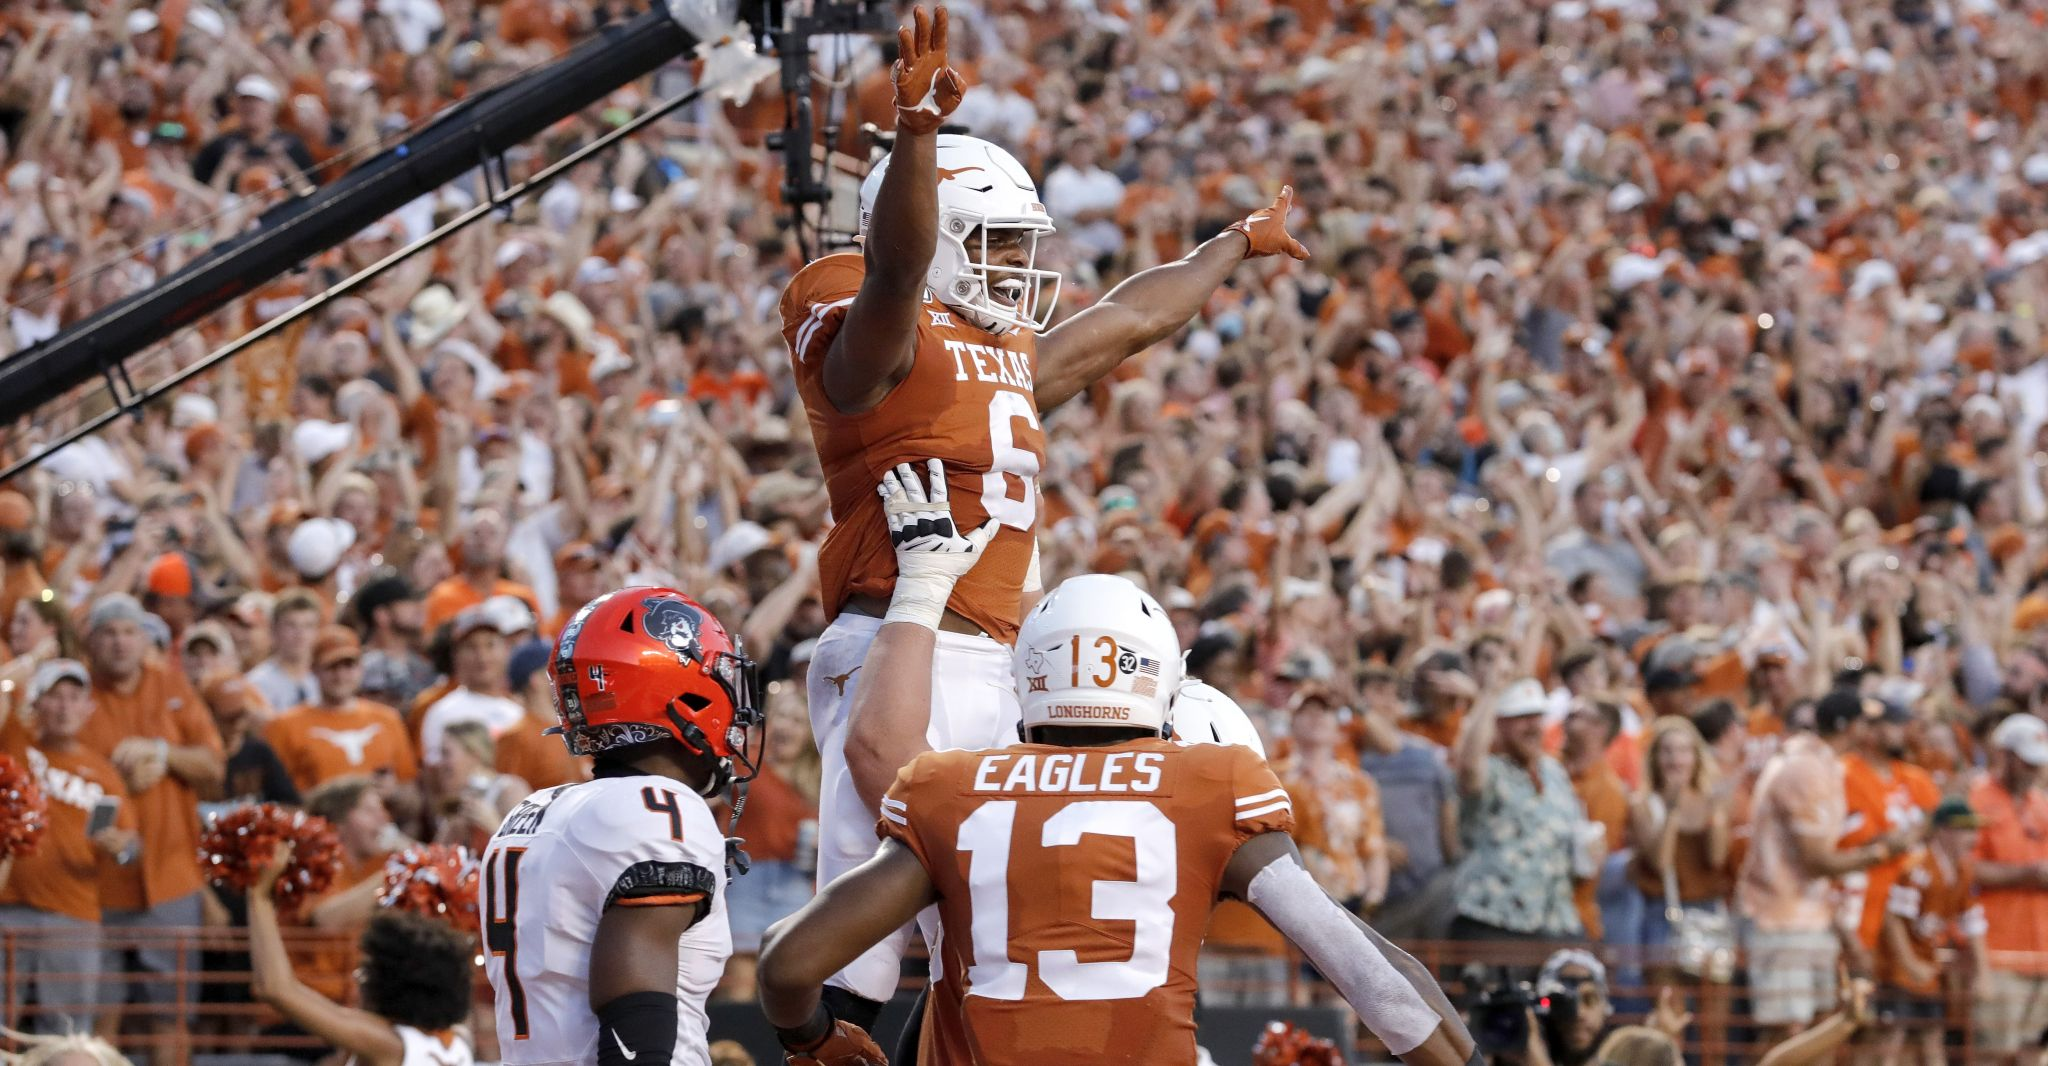 Finally, Texas gets the best of Oklahoma State